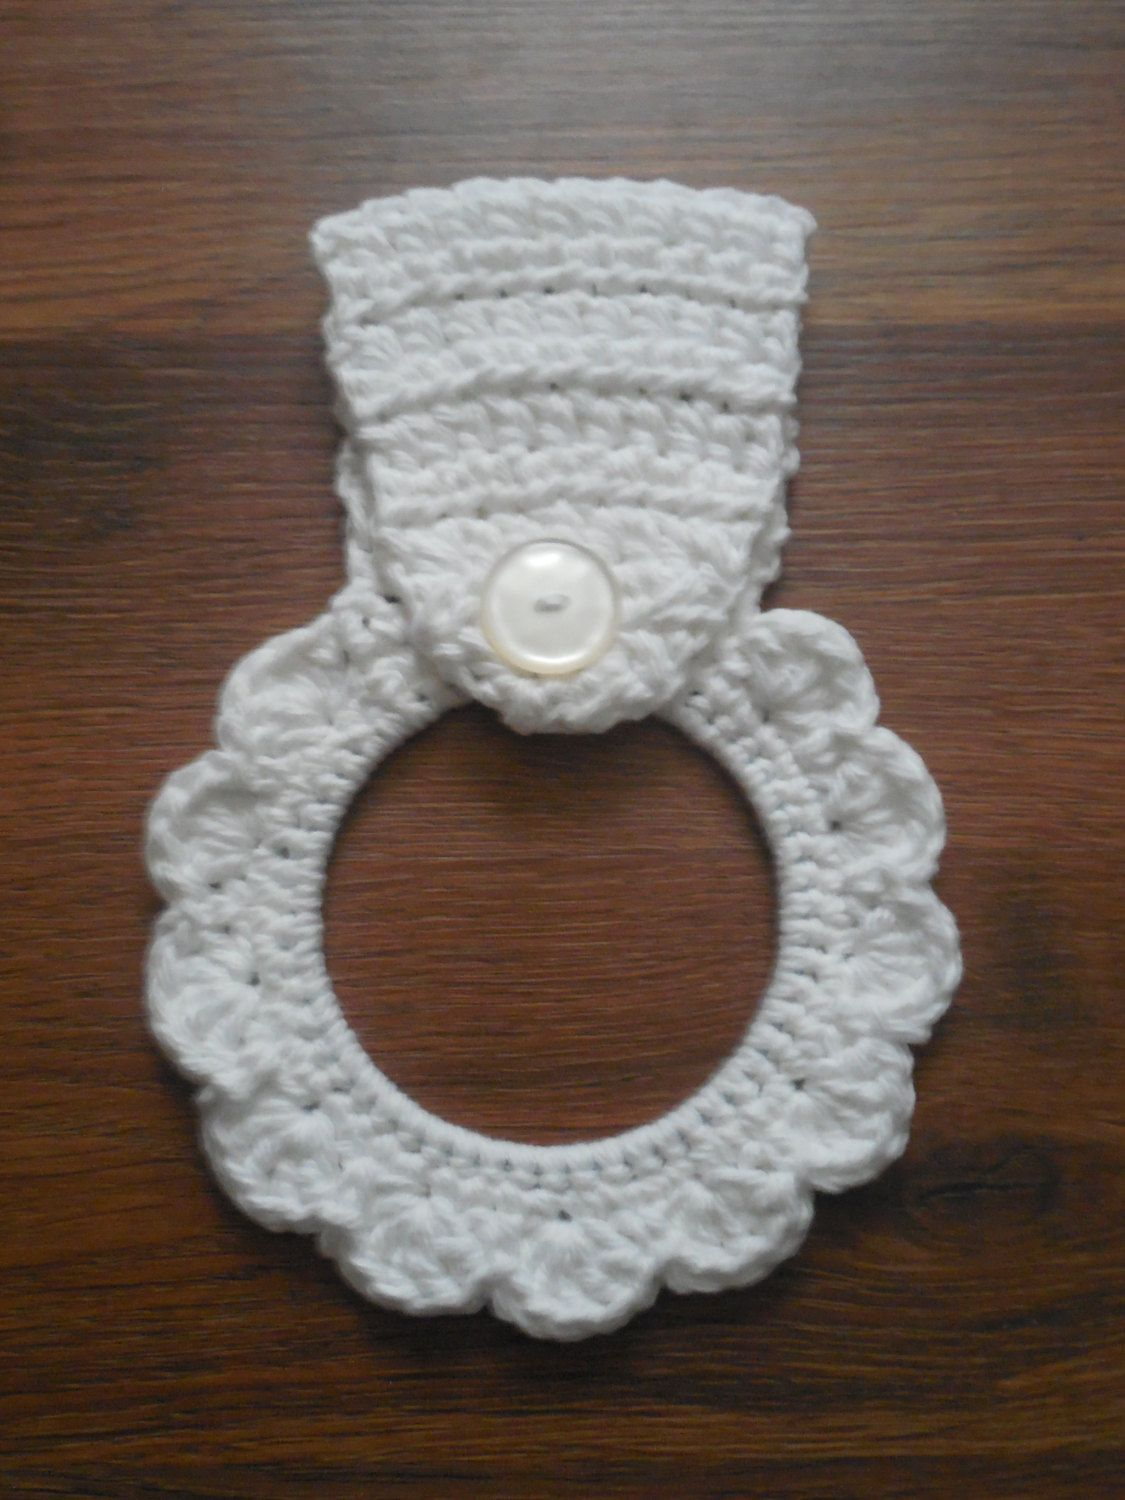 Dish Towel Holder Kitchentowel Topper Spring Summer Home Decor Housewarming Gift Handmade Crochet Dish Cloth Hanger White Kitchen